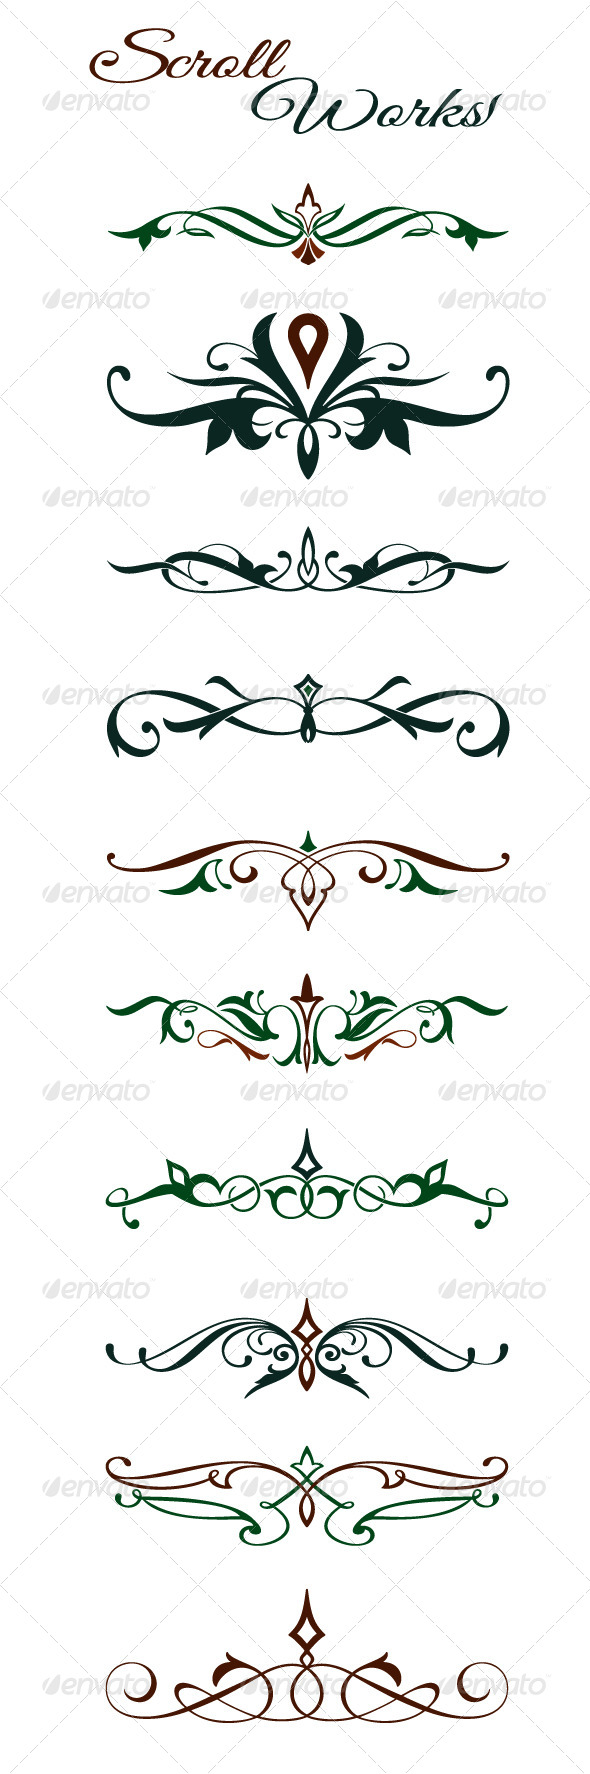 Scroll Design Elements - Flourishes / Swirls Decorative